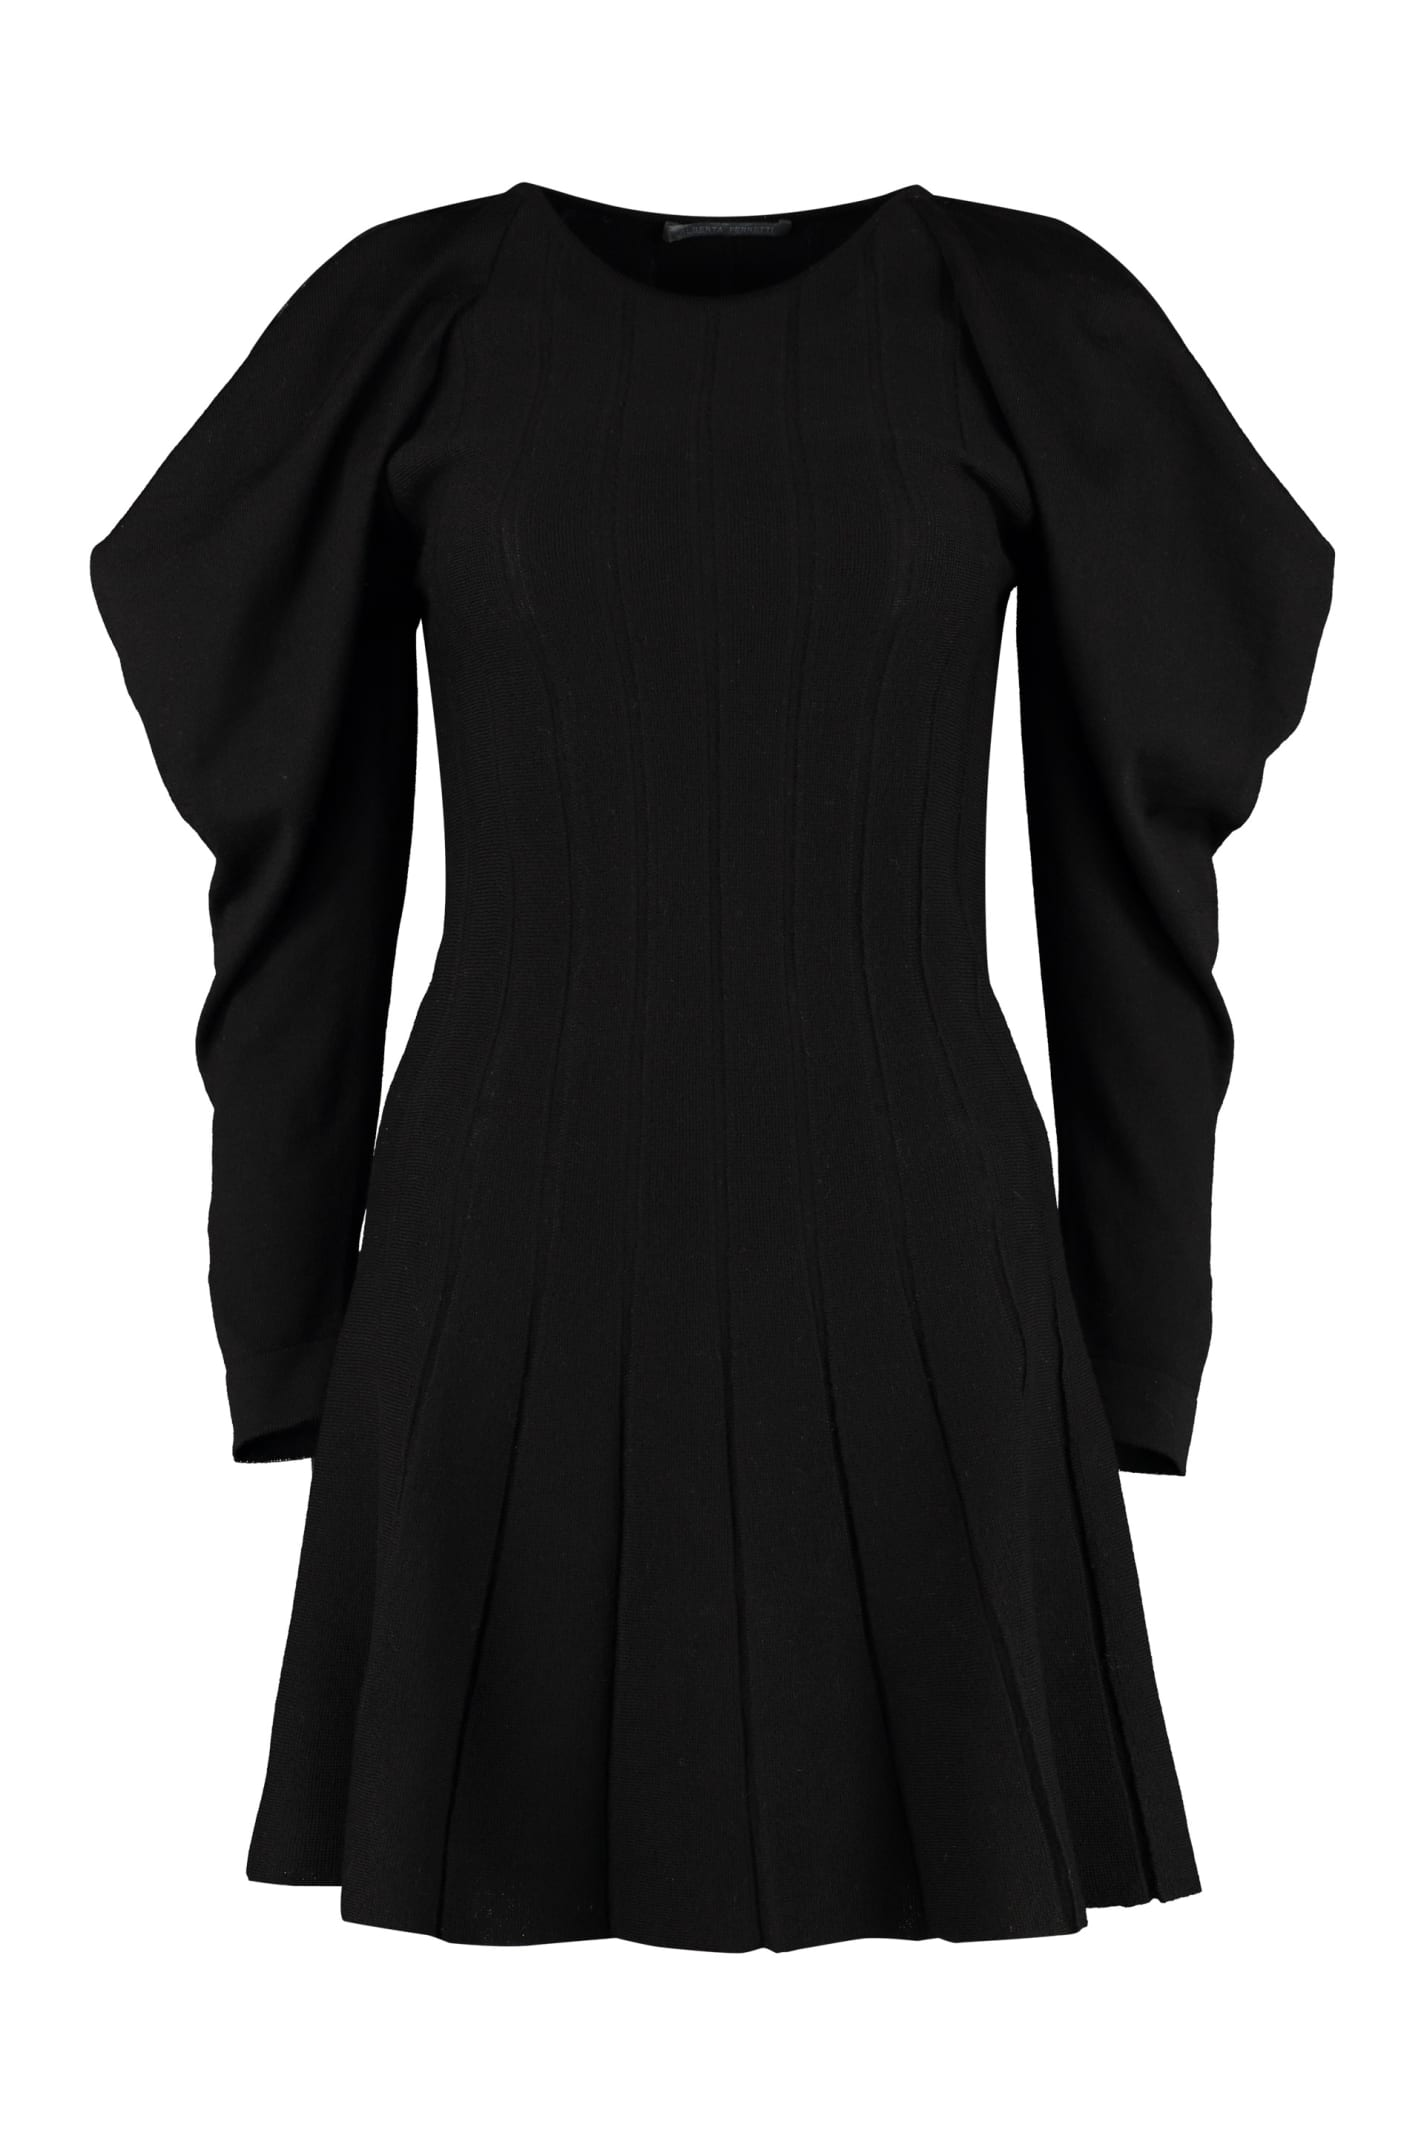 Alberta Ferretti Ribbed Knit Dress